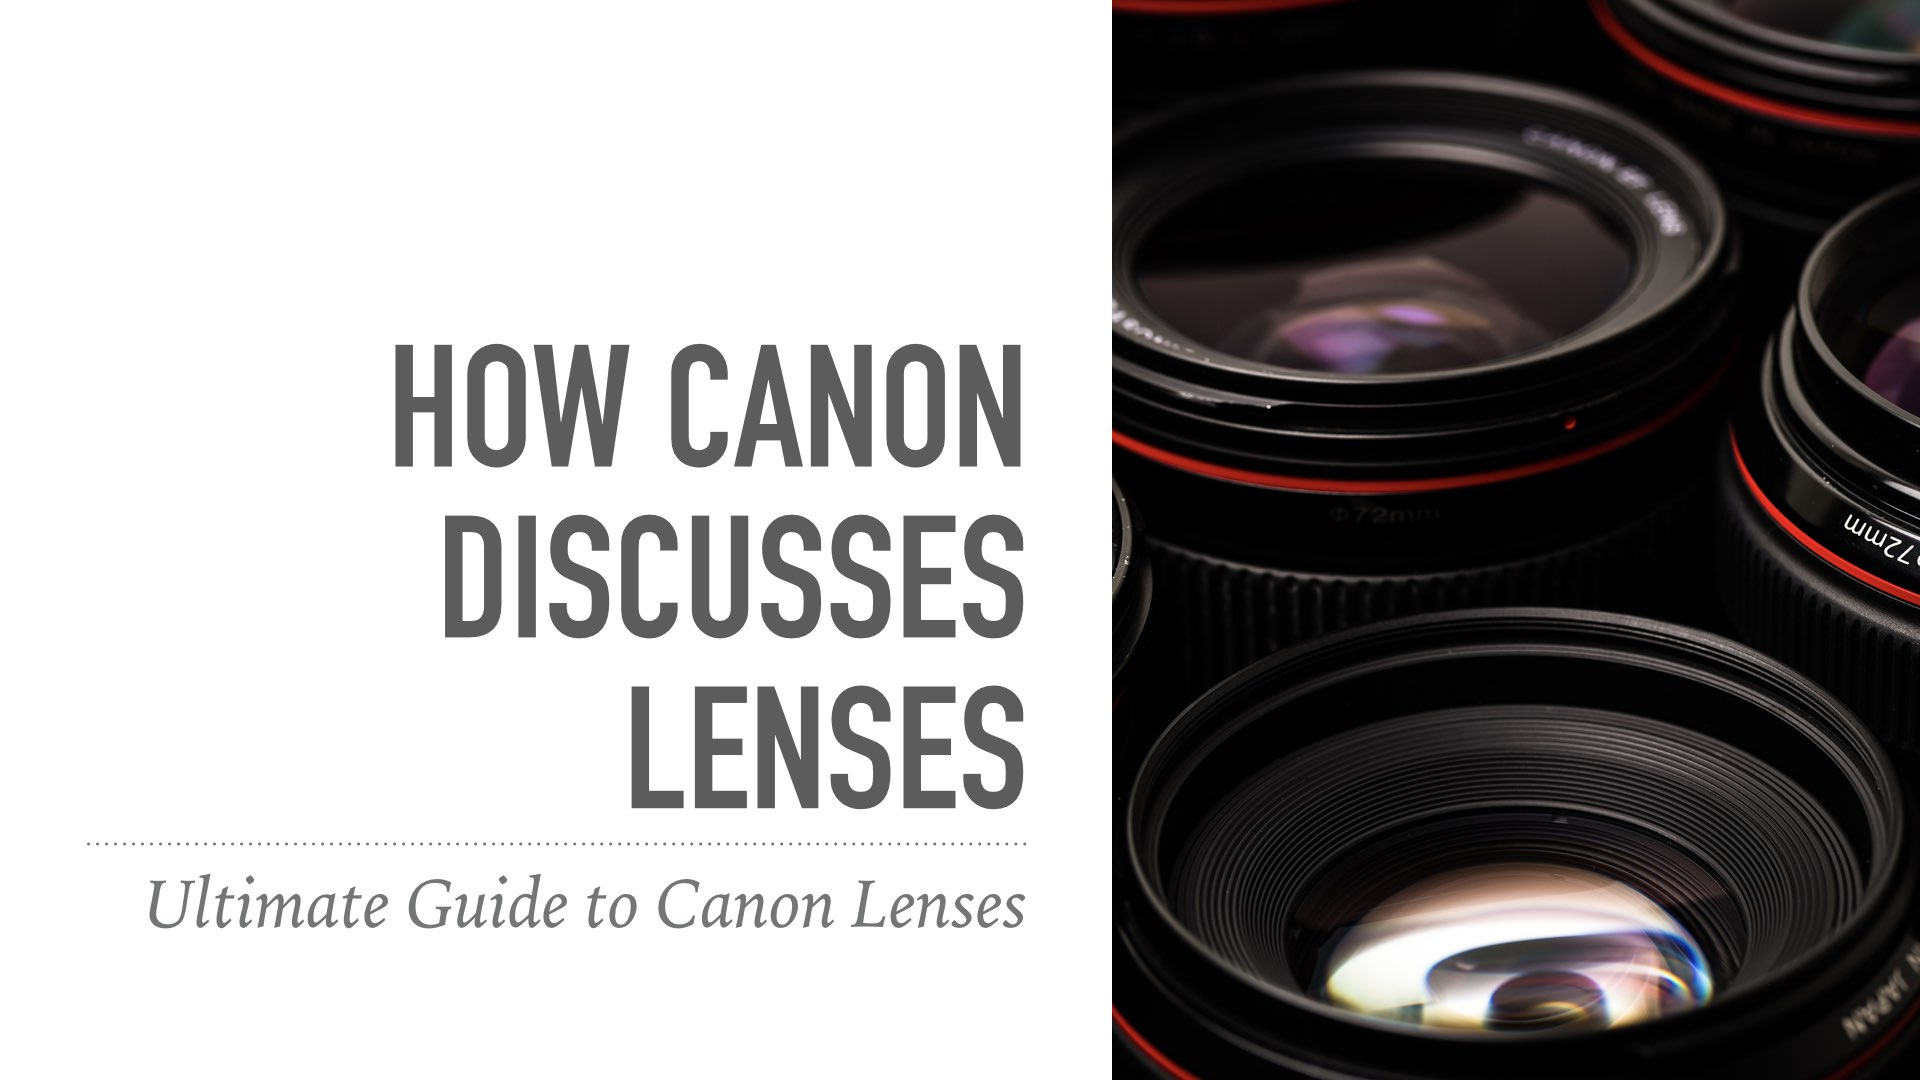 Guide to Canon Lenses.034.jpeg